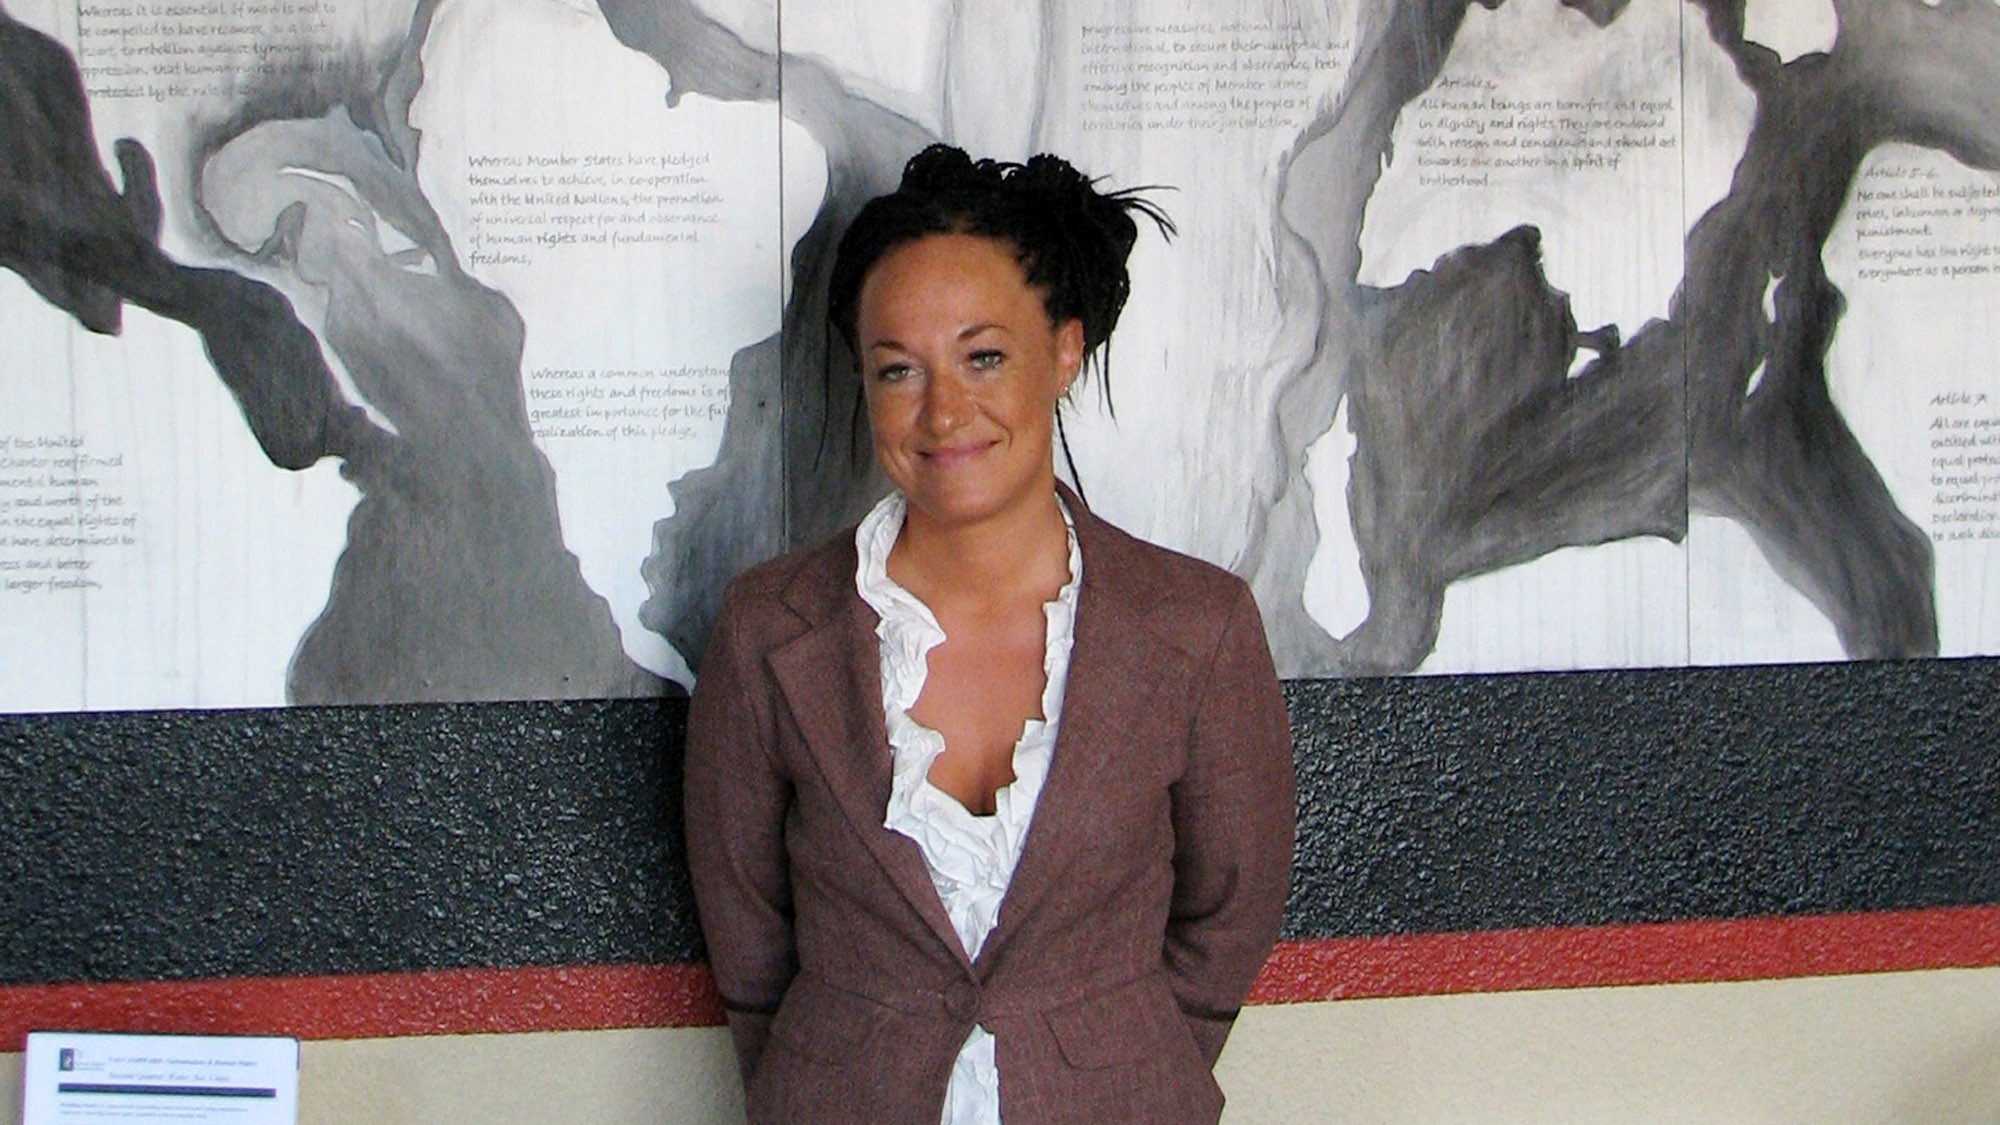 "FILE - In this July 24, 2009, file photo, Rachel Dolezal, a leader of the Human Rights Education Institute, stands in front of a mural she painted at the institute's offices in Coeur d'Alene, Idaho. Dolezal, the former NAACP chapter president who made headlines in June when her race came into question, faces that question Monday, Nov. 2, 2015, when she appears on the talk show ""The Real."" (AP Photo/Nicholas K. Geranios, File)"